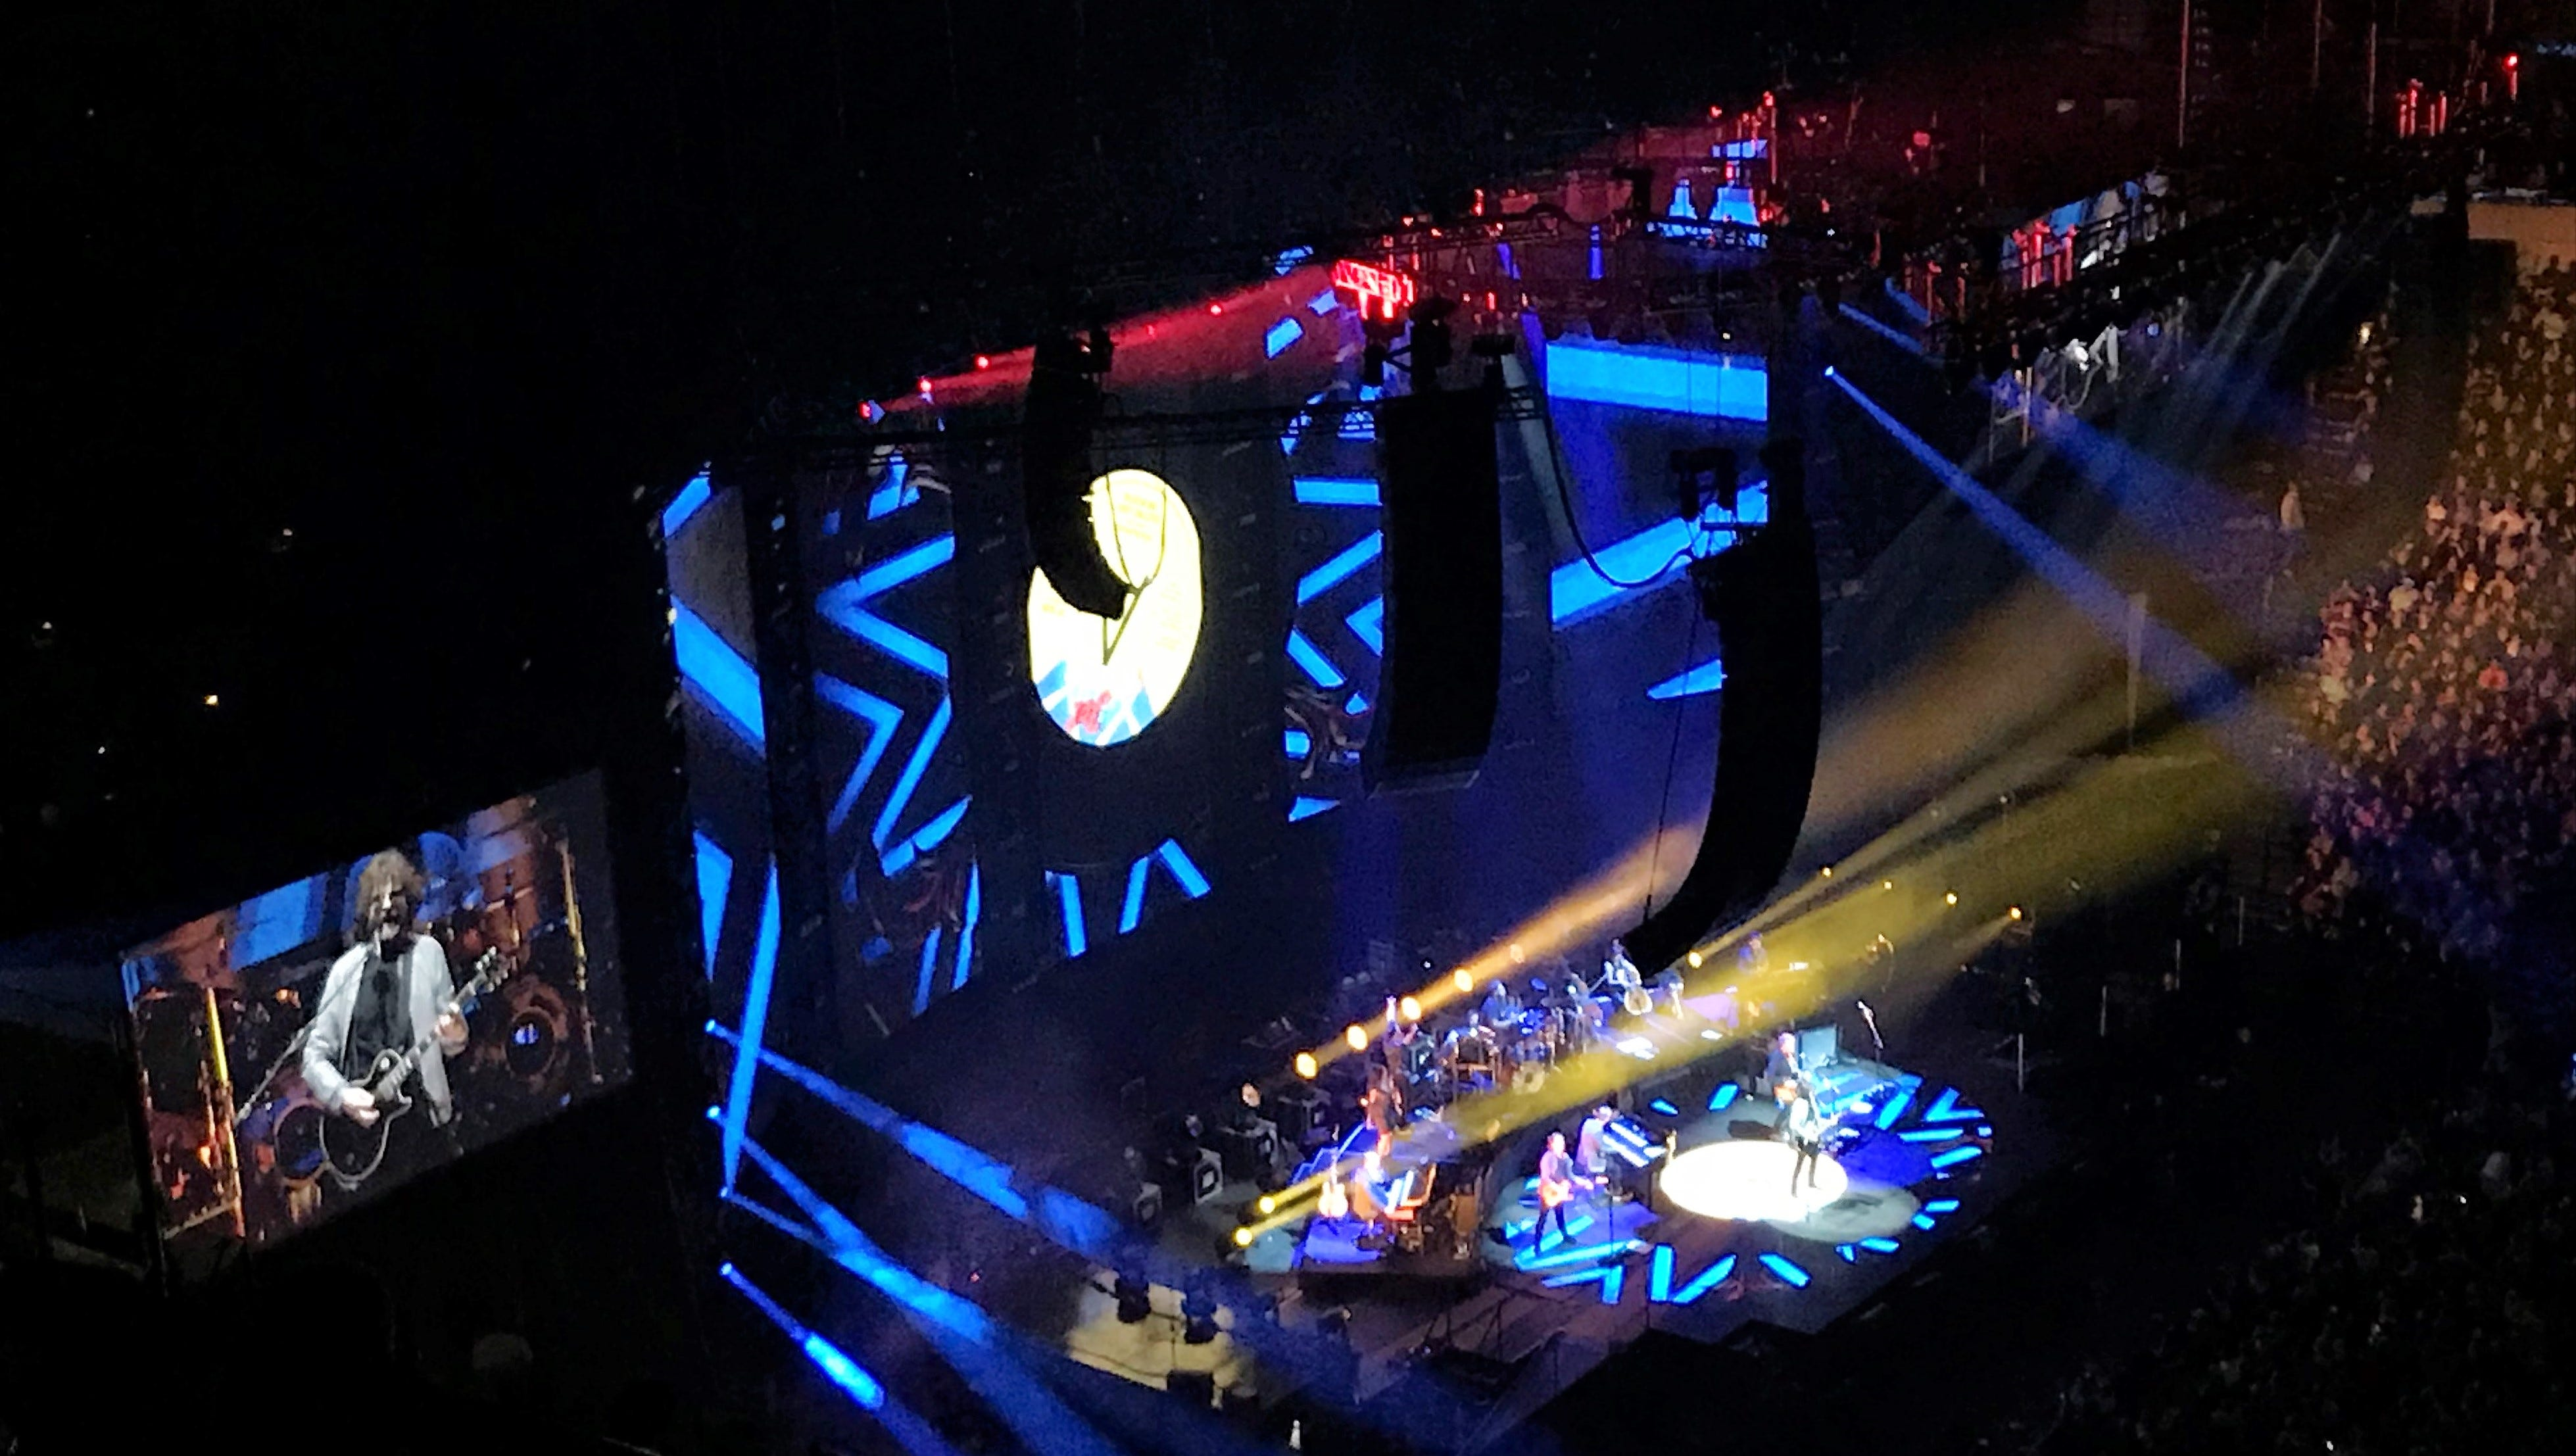 Jeff Lynne, seen left on video screen, still fronts the Electric Light Orchestra, which lit up the American Airlines Center in Dallas on Monday.